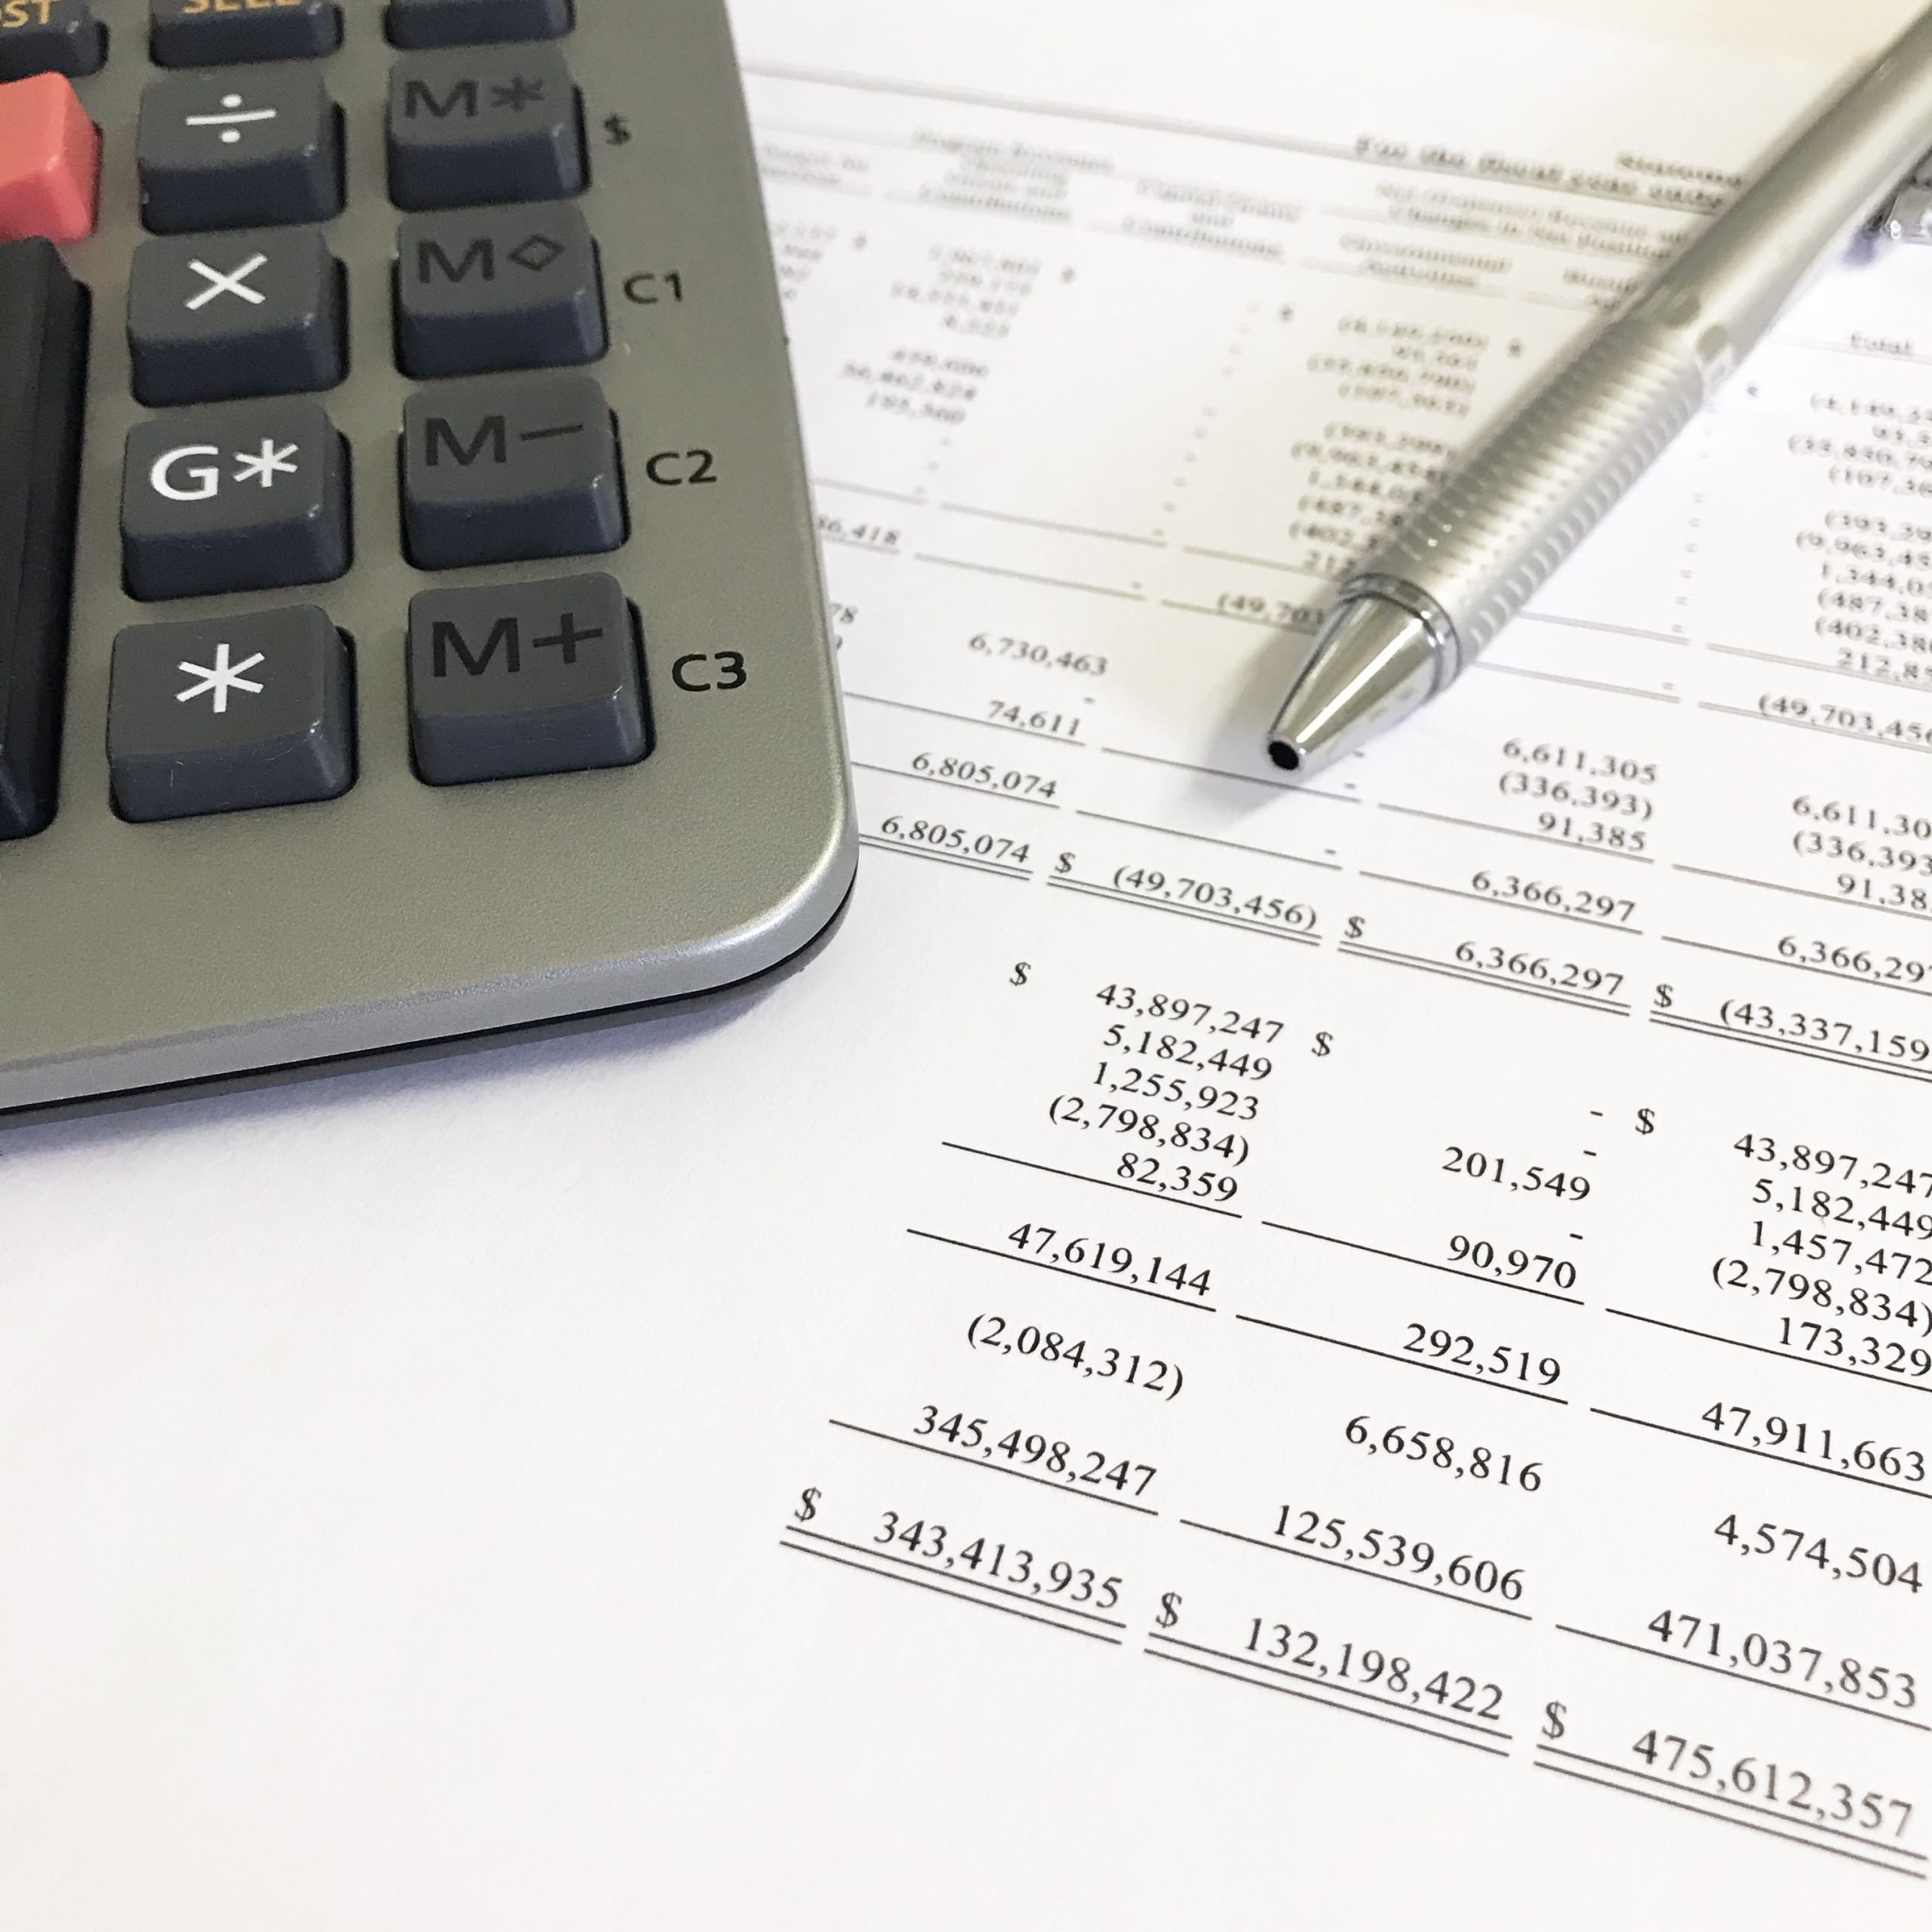 Image of a calculator and pen on top of a financial statements